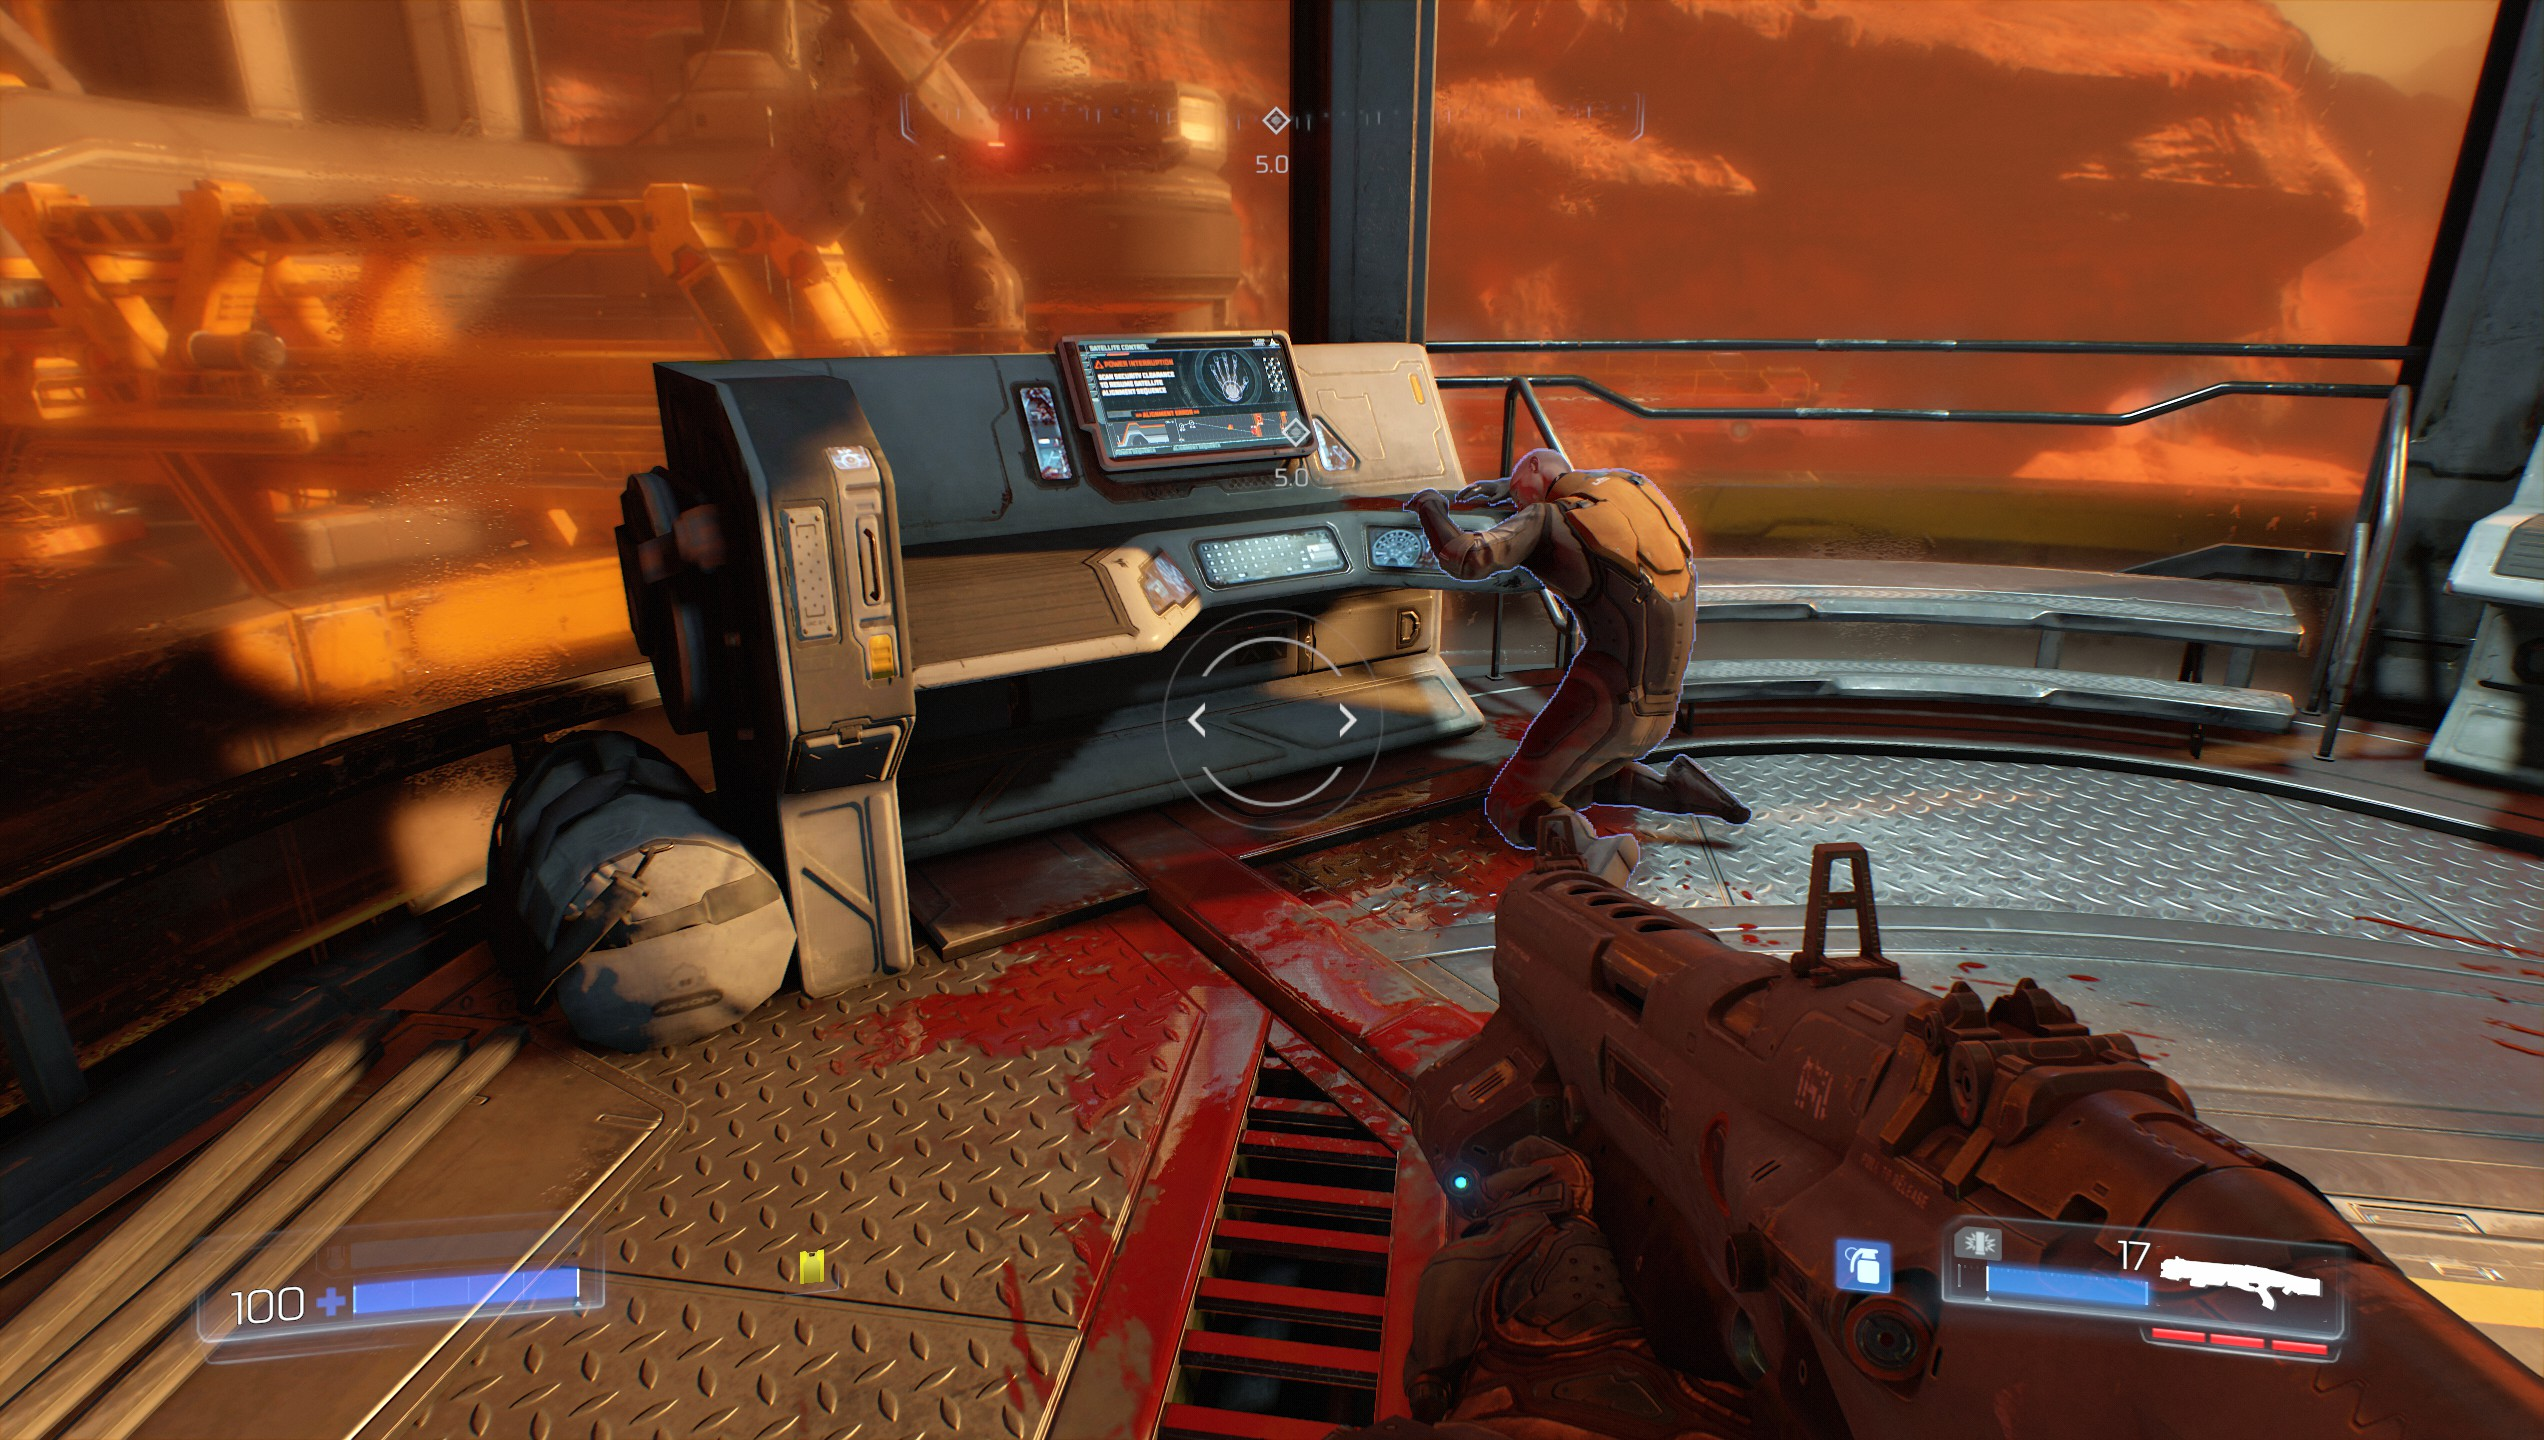 Doom (2016) single-player review: Back to basics | Ars Technica